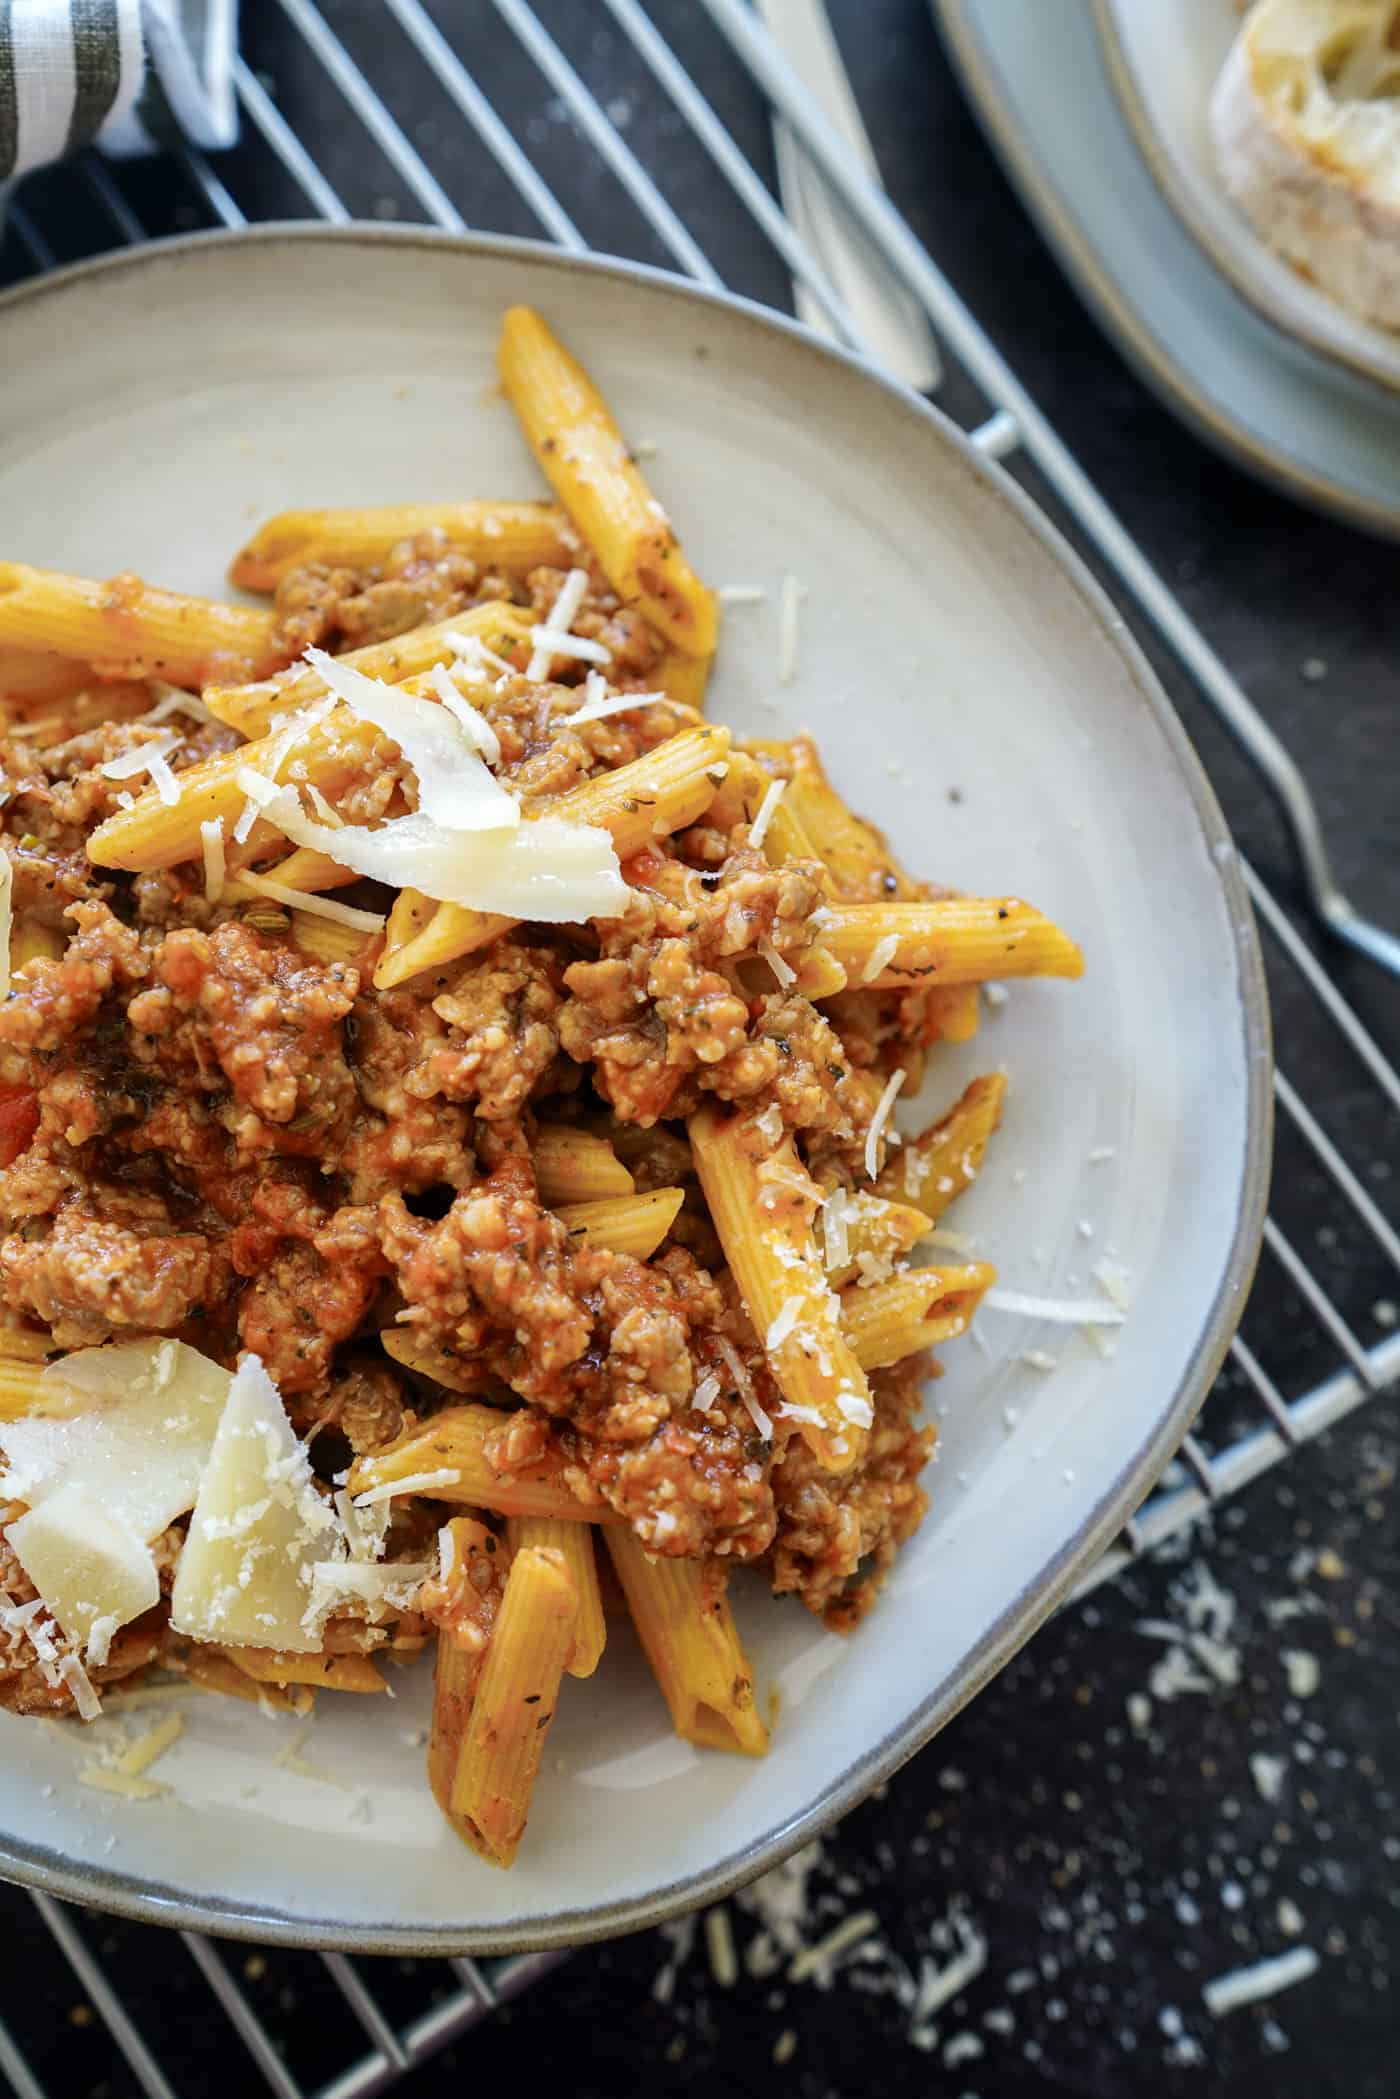 A plate of Instant Pot Penne Pasta made with suasage and parmesan cheese